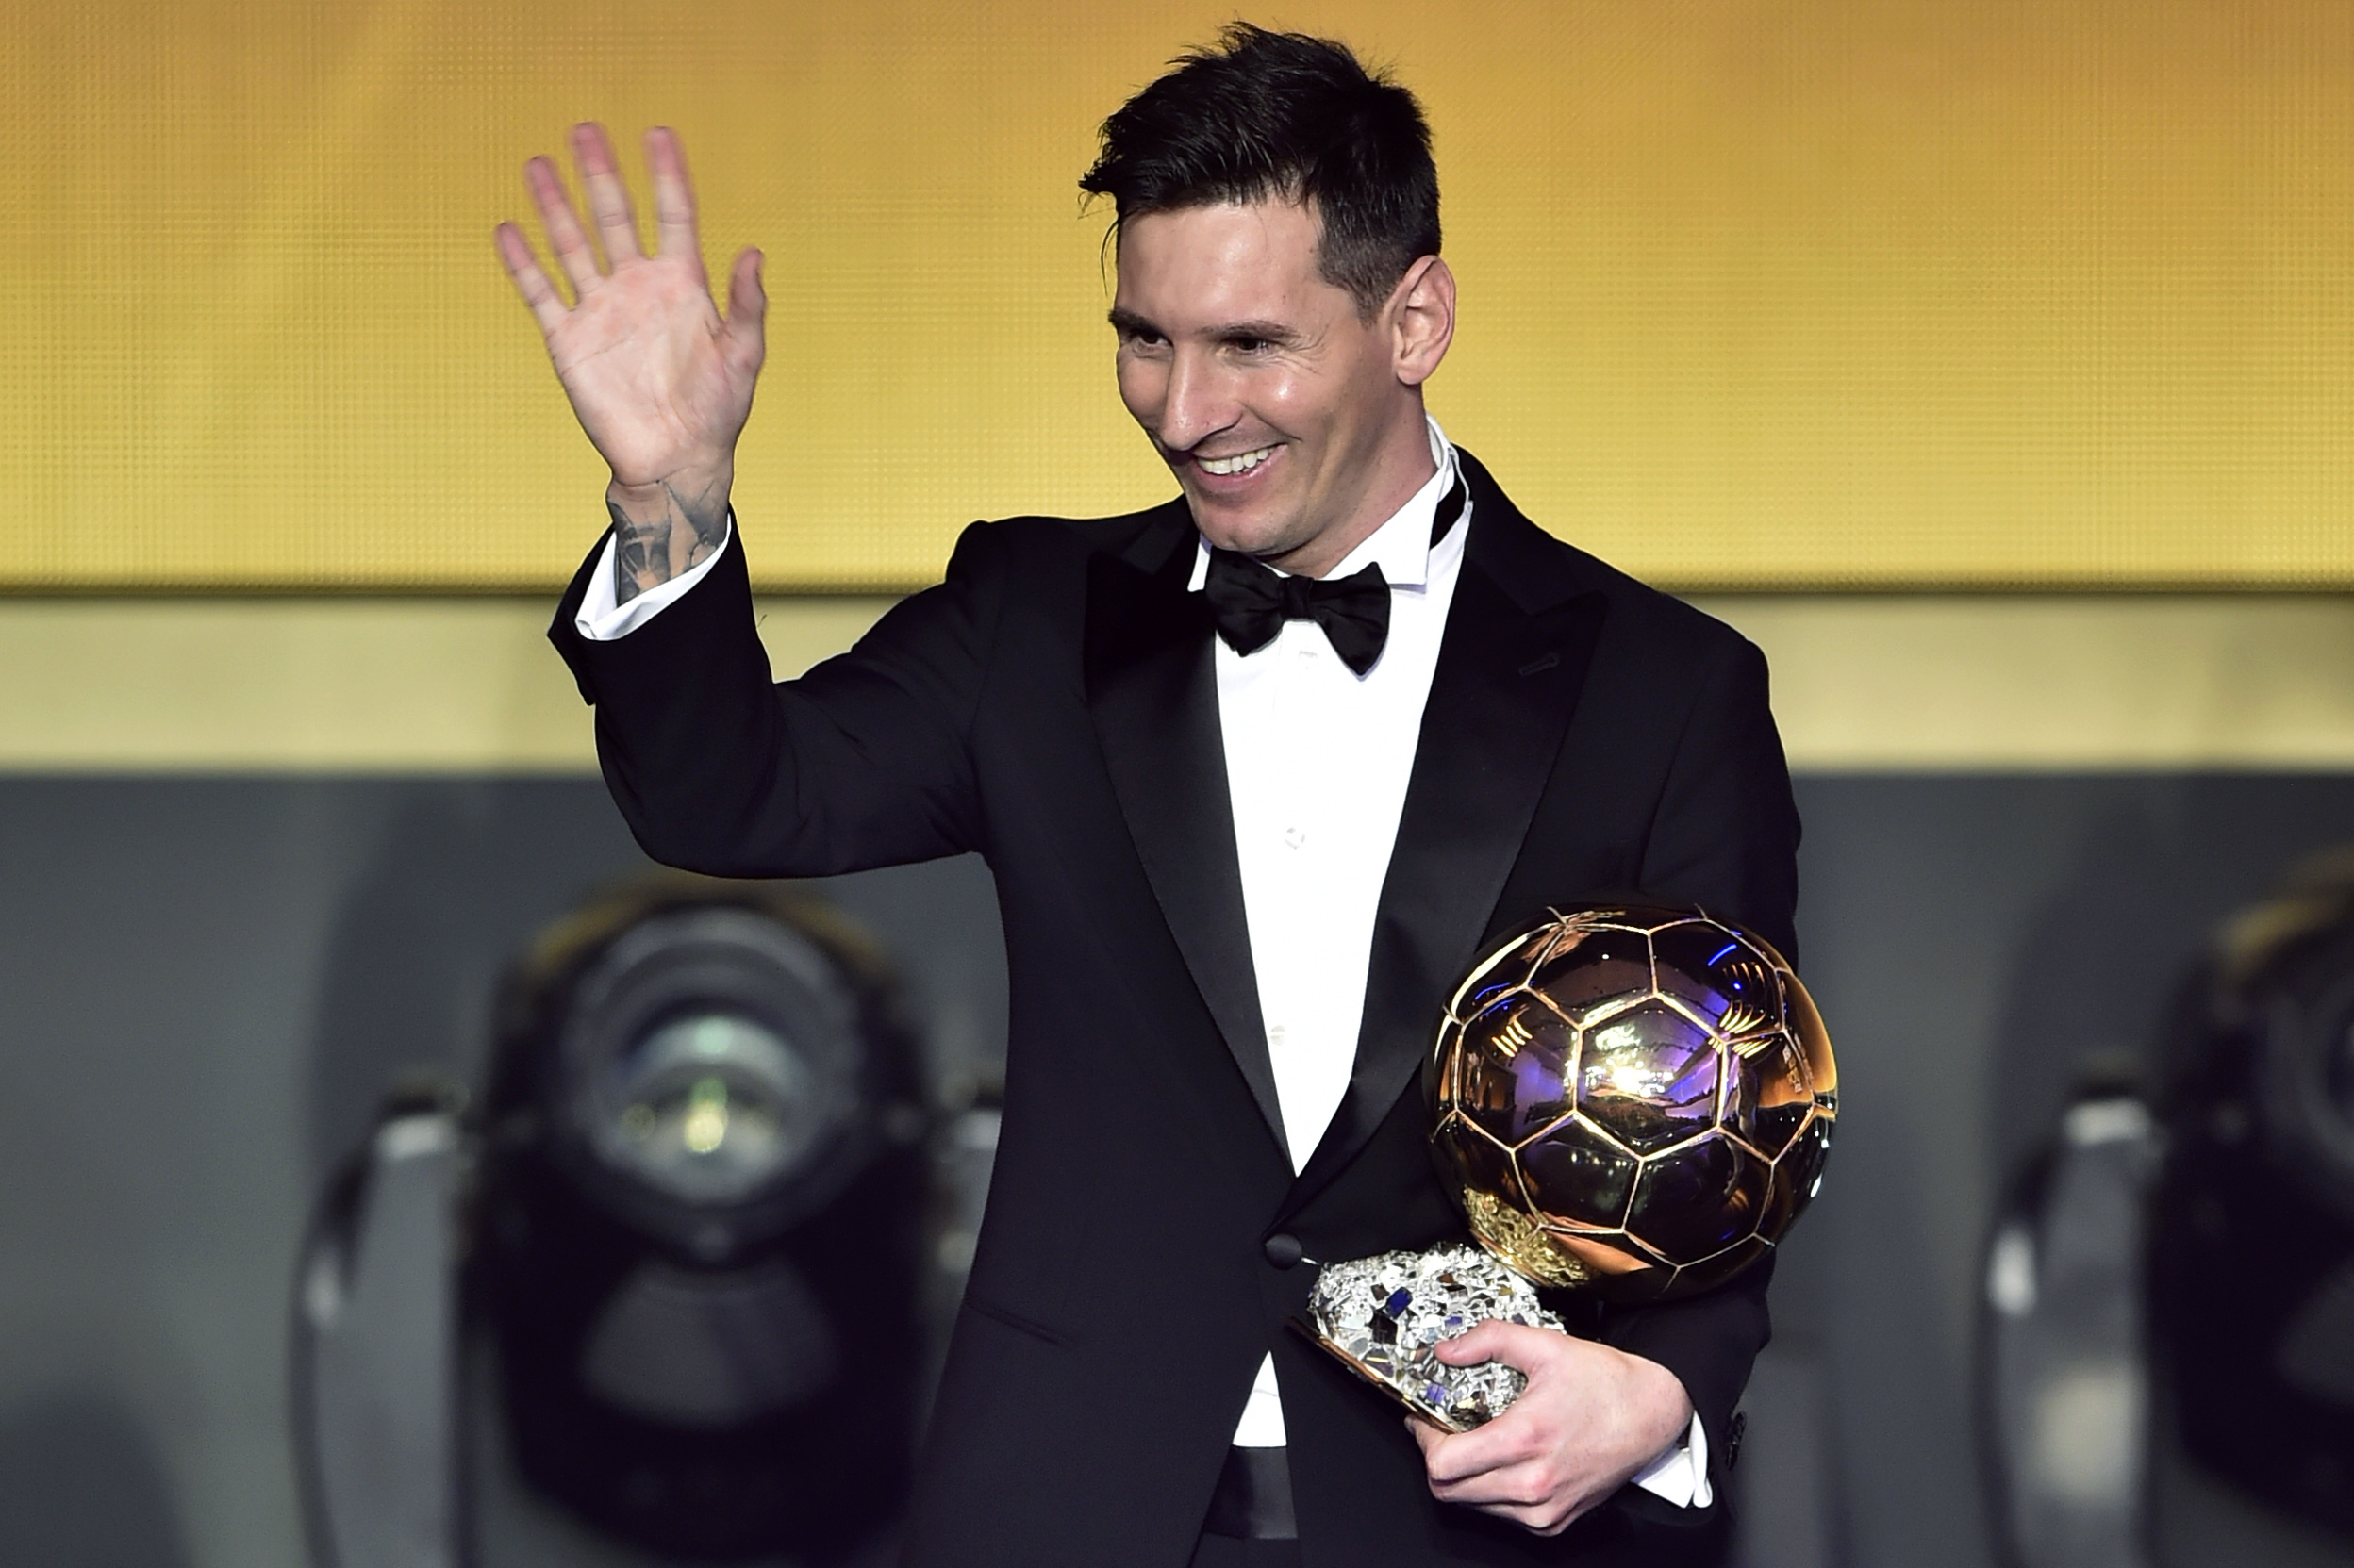 Lionel Messi waves holding his trophy after receiving the 2015 FIFA Ballon dOr award for player of the year during the 2015 FIFA Ballon d'Or award ceremony in Zurich on Jan. 11, 2016.